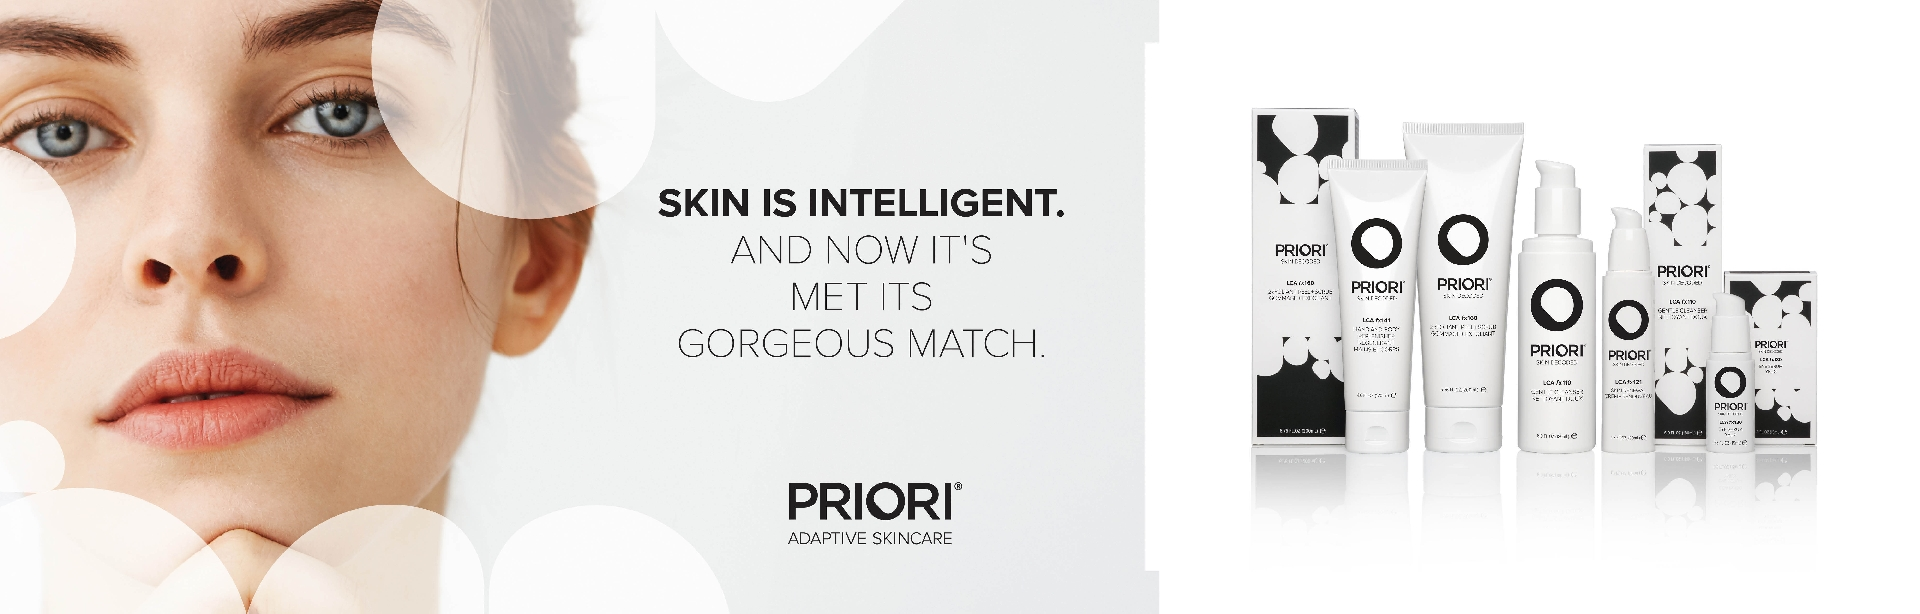 PRIORI Skin Decoded